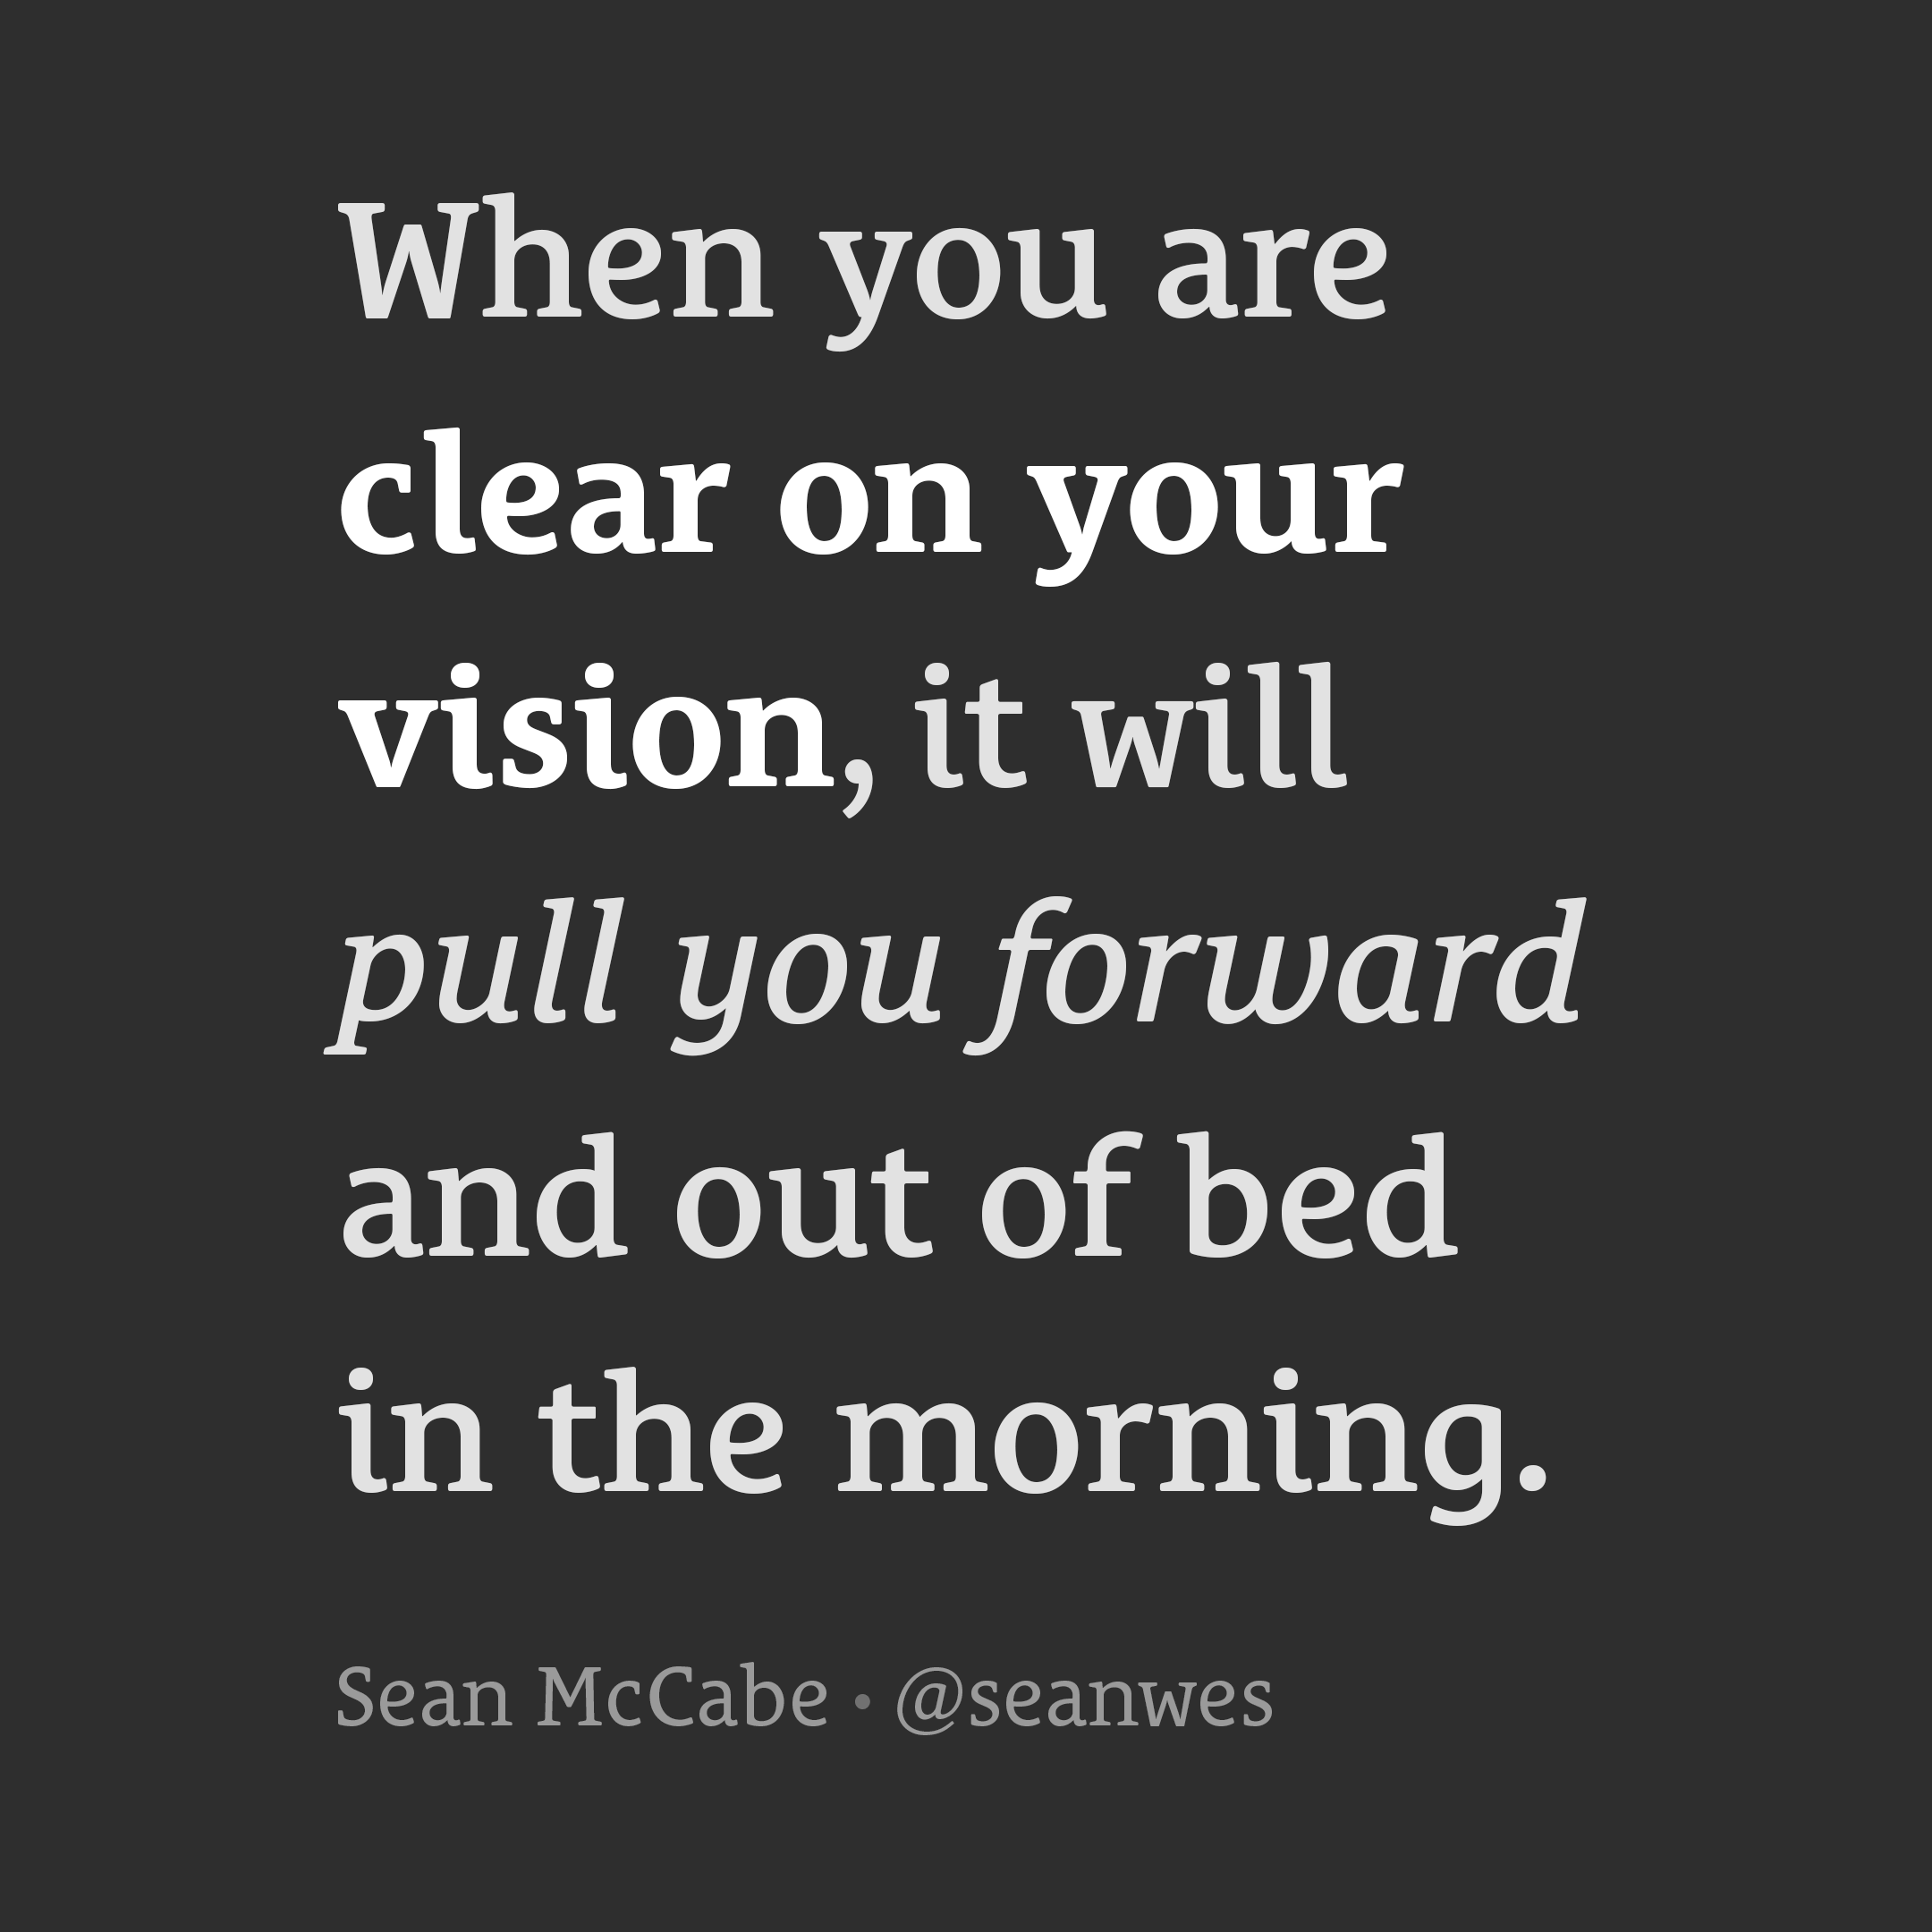 When you are clear on your vision.